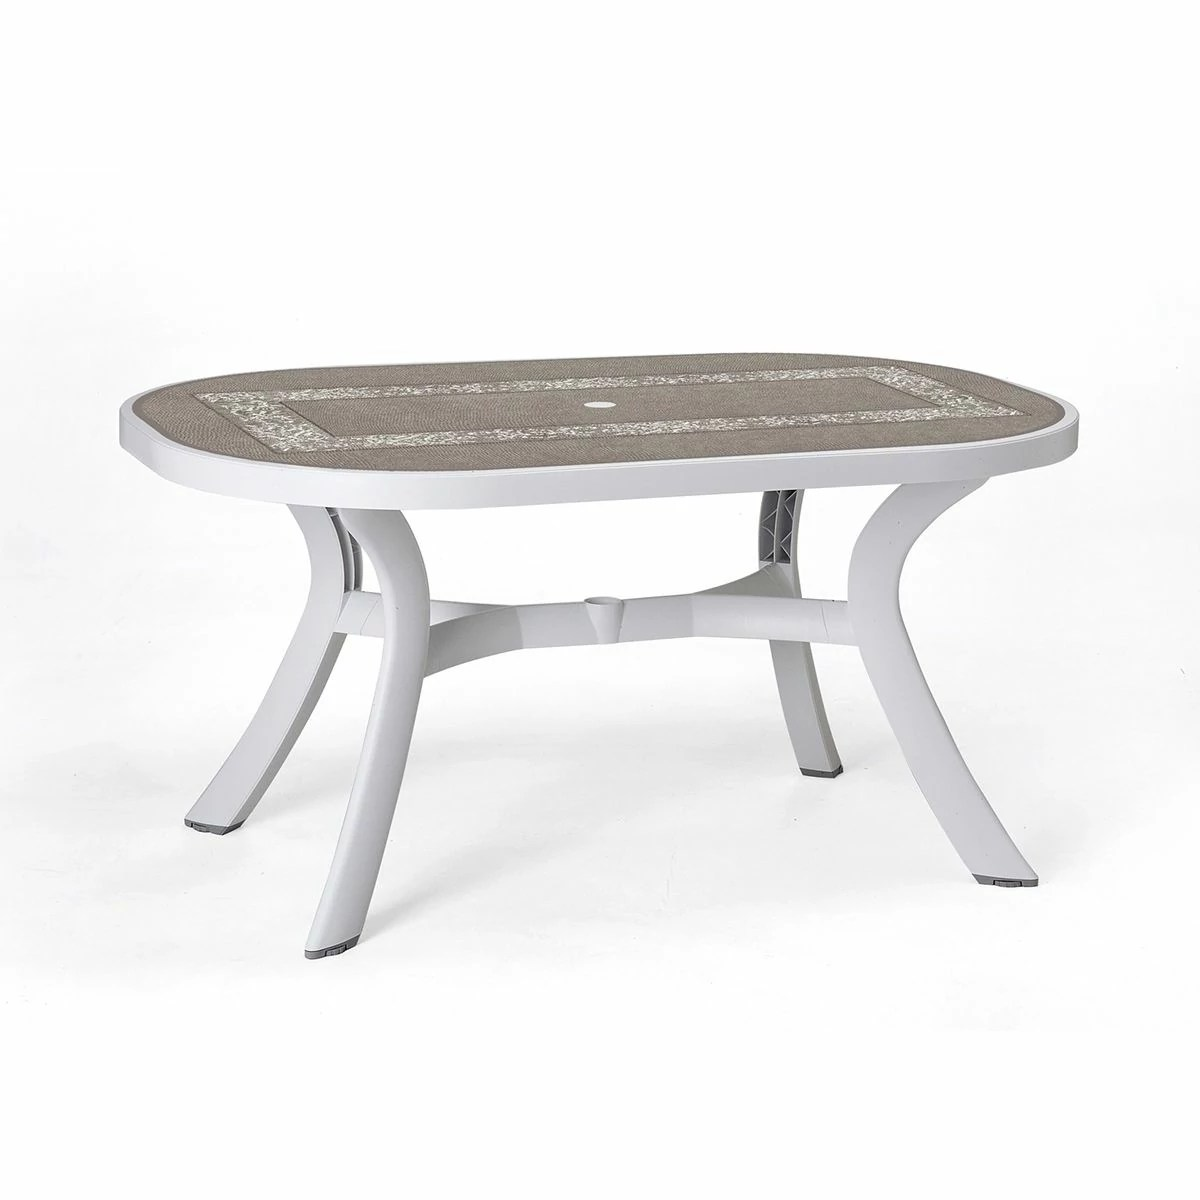 Table Octogonale De Jardin | Prendre Soin De Sa Table En Teck Maison ...